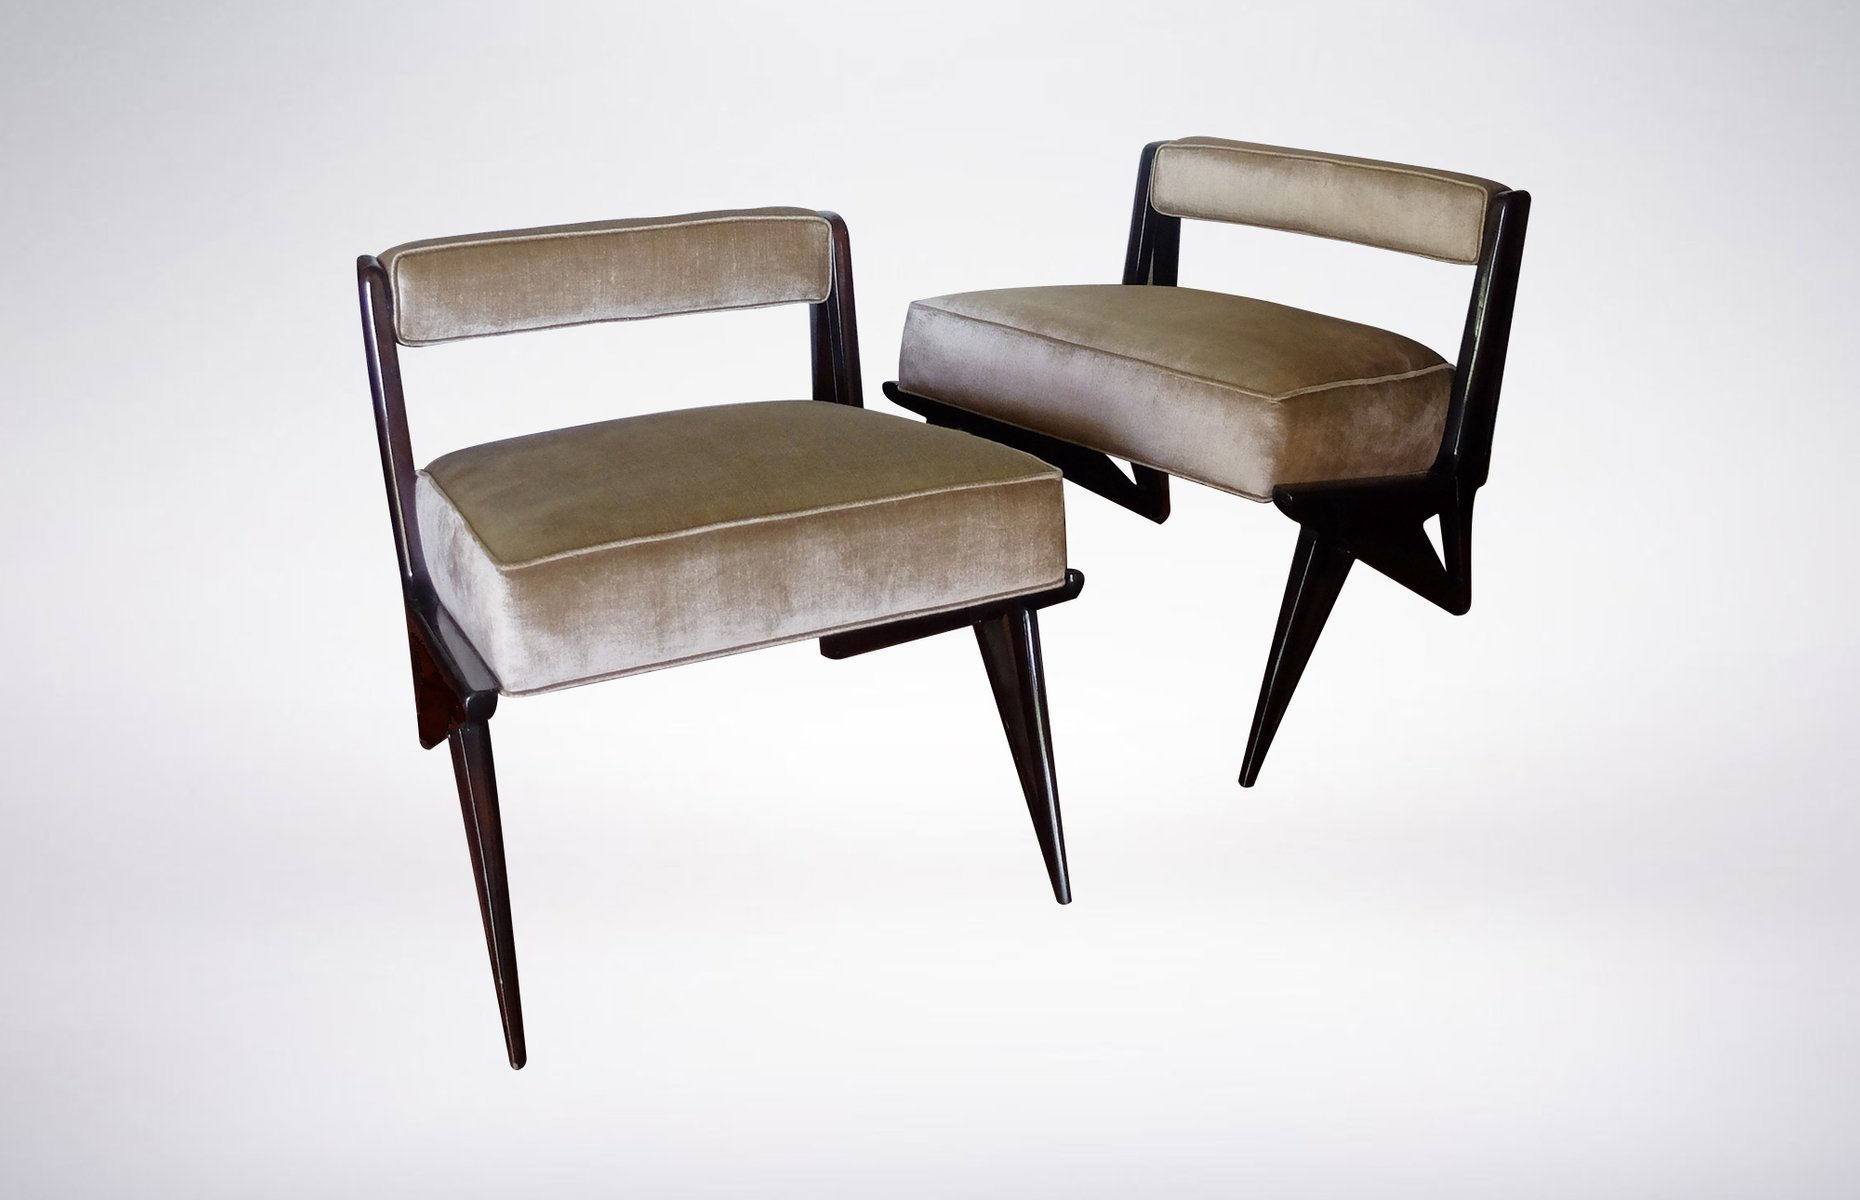 chaise d 39 appoint verte p le en cuir 1950s en vente sur pamono. Black Bedroom Furniture Sets. Home Design Ideas